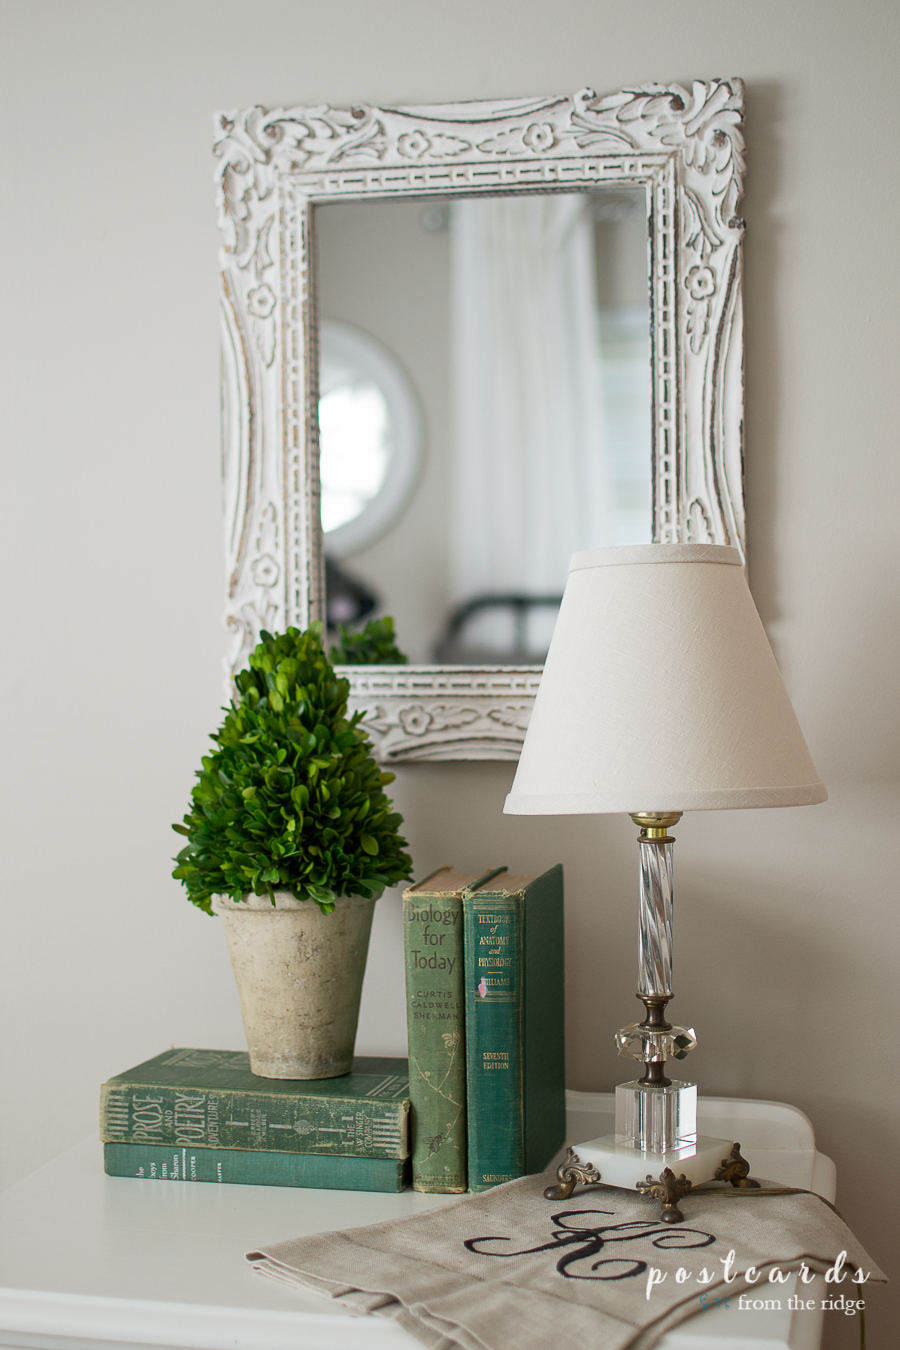 LOVE this vintage bedroom decor. Those old green books are gorgeous!